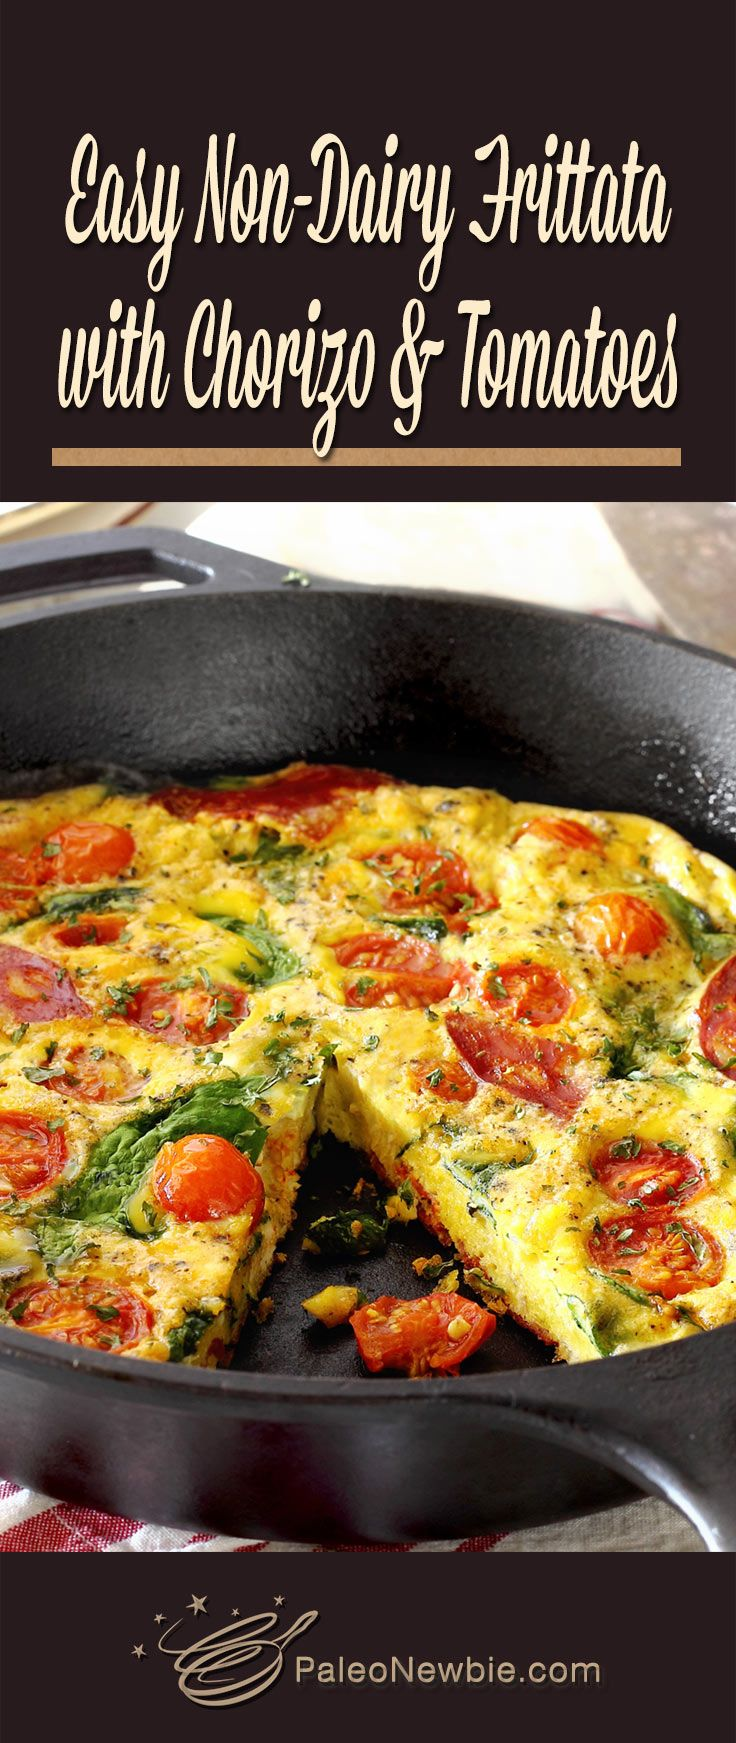 Never made a frittata before? This super-simple recipe will make you an expert at this gorgeous one-skillet breakfast on your very first try! [Paleo • Dairy-Free • Gluten-Free]